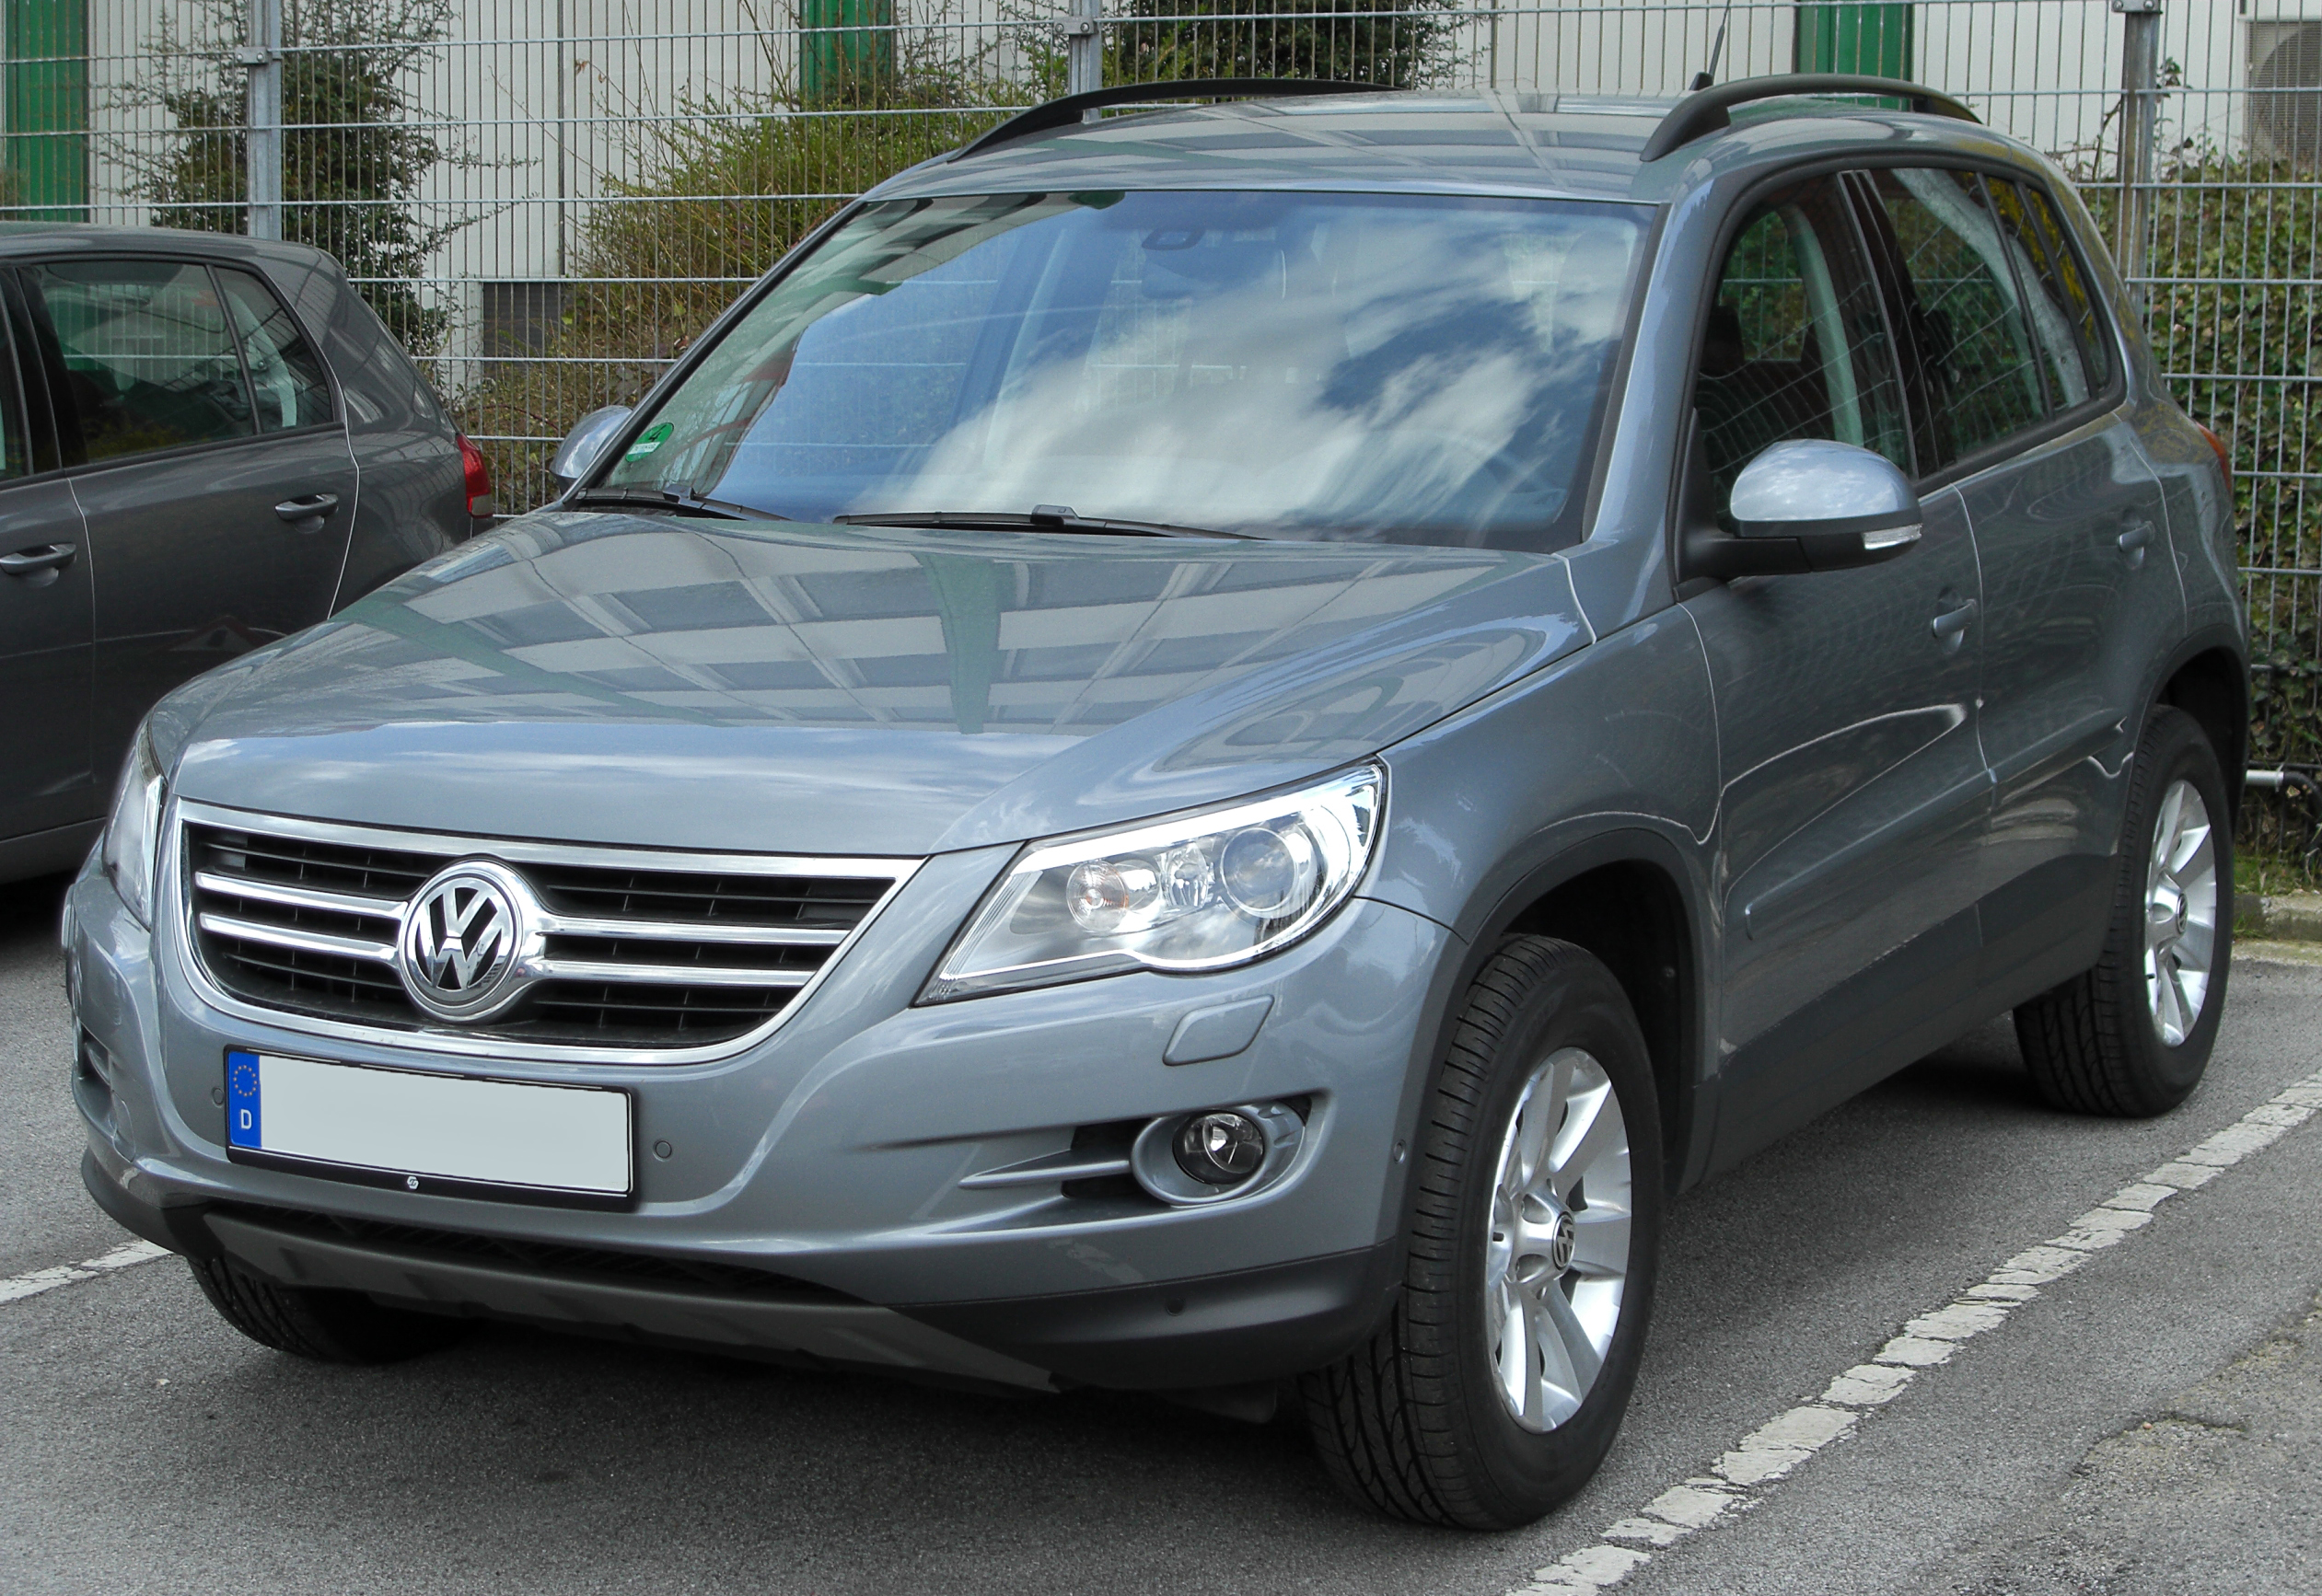 datei vw tiguan front wikipedia. Black Bedroom Furniture Sets. Home Design Ideas